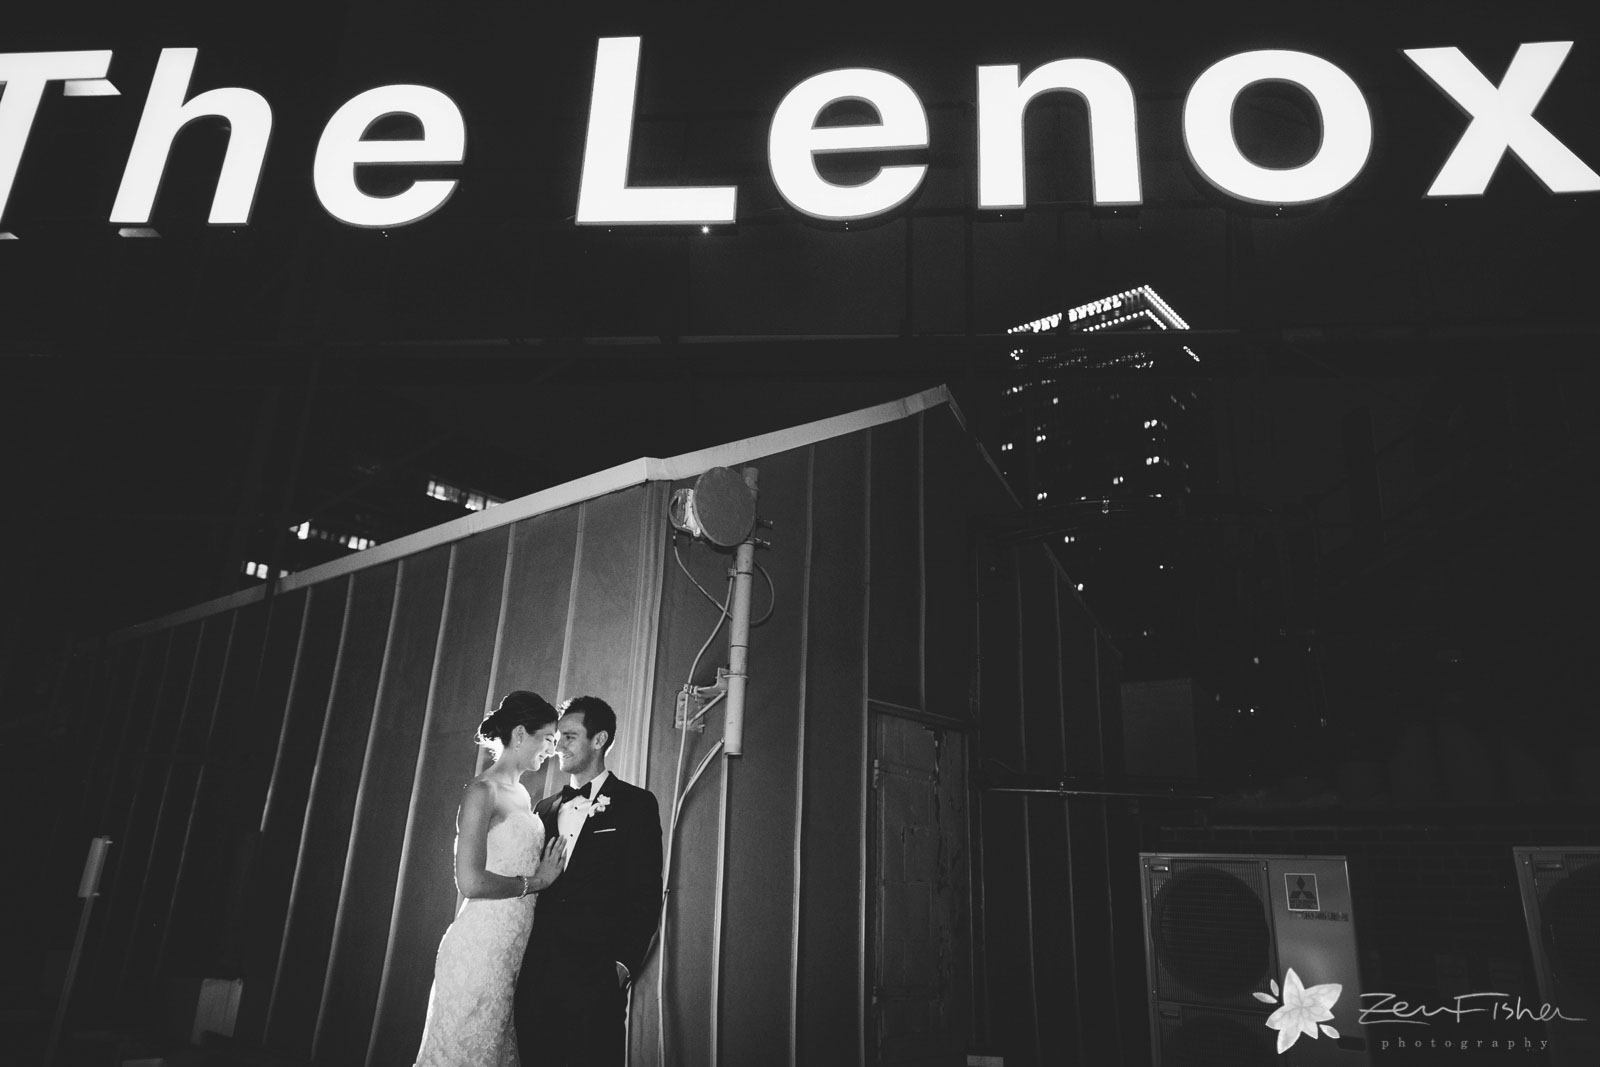 Bride and groom on the roof of the Lenox Hotel sharing a quiet moment together at end of the night.